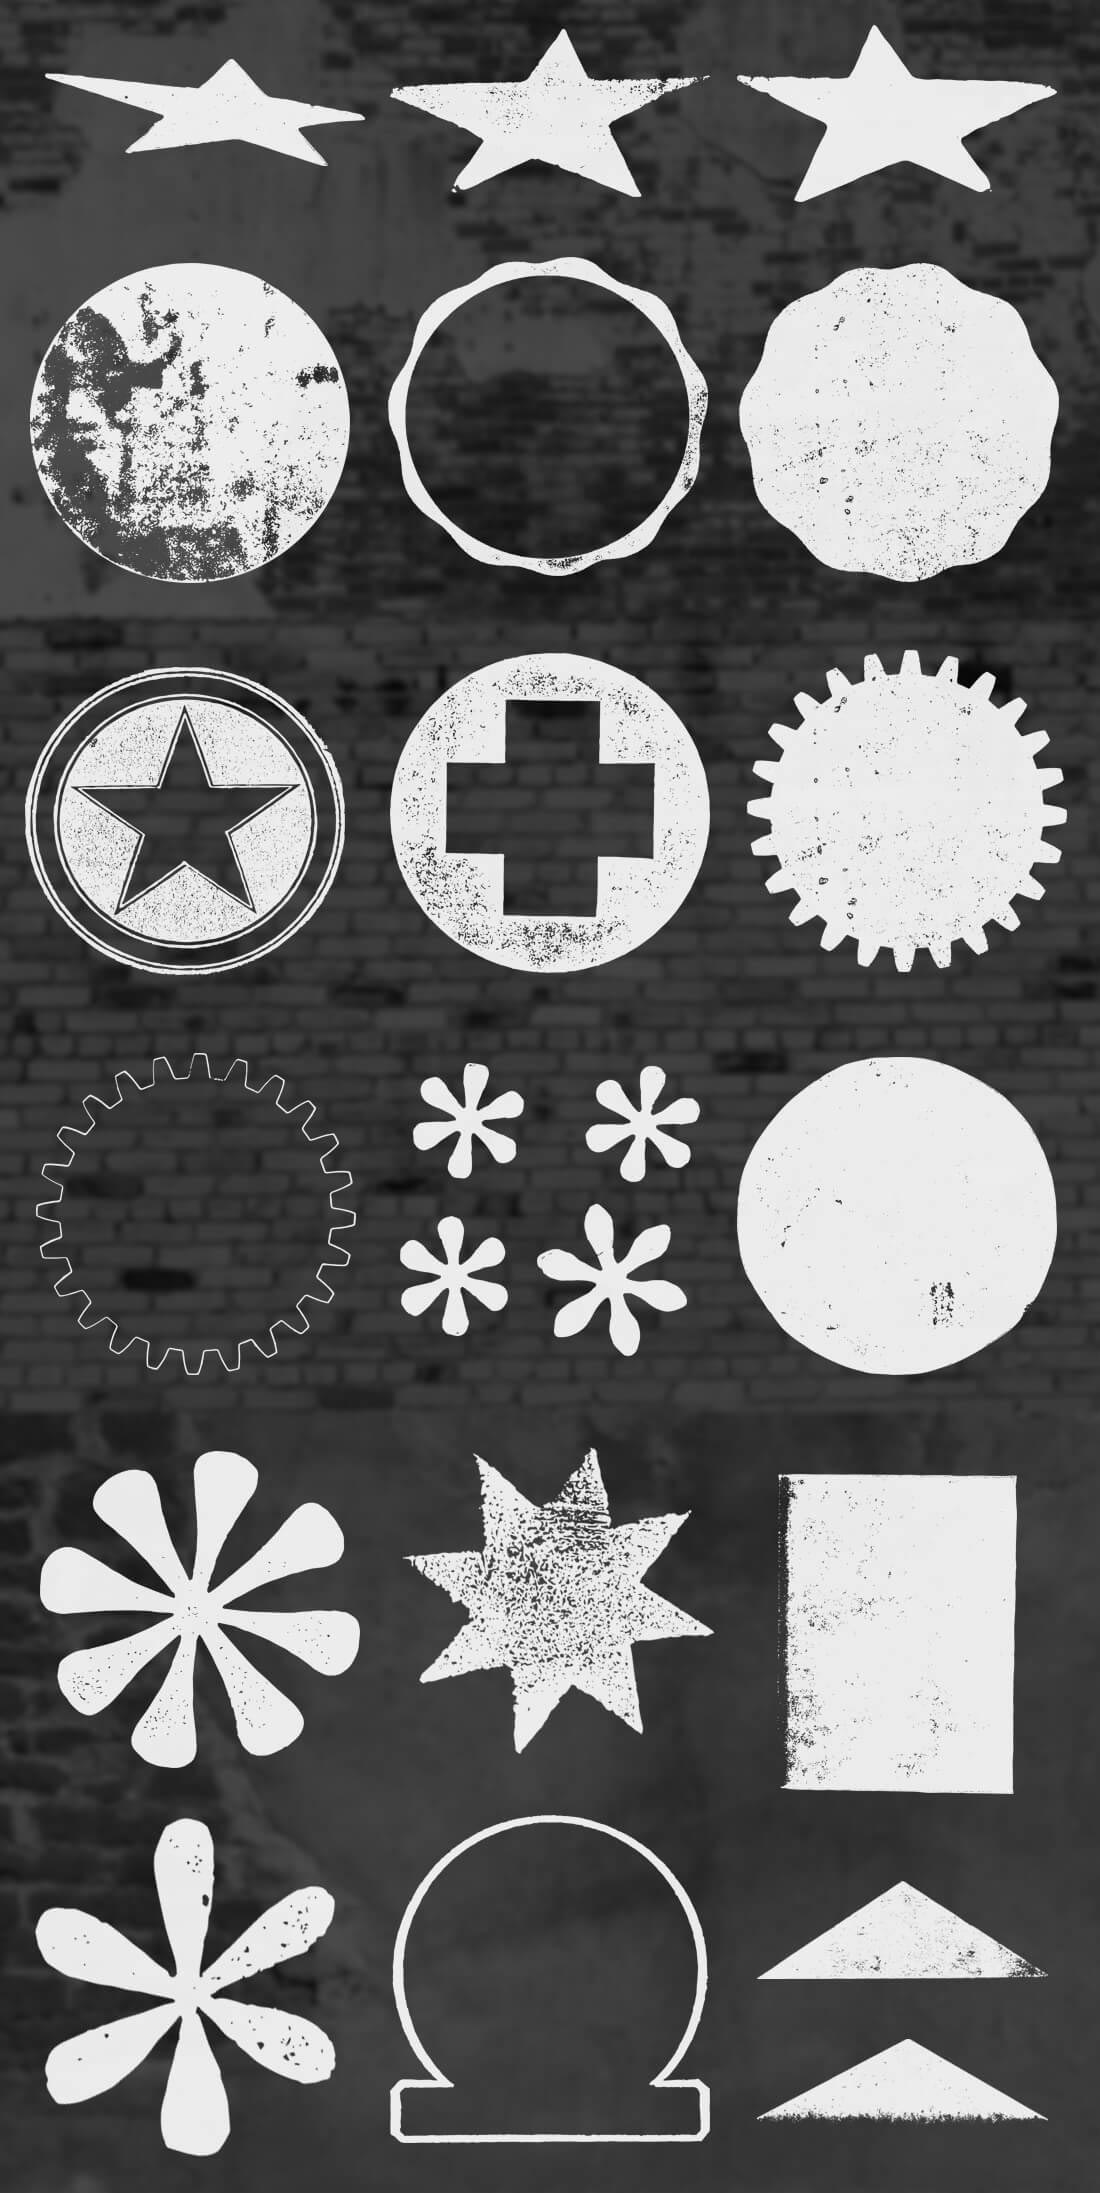 ultrashock-grunge-shapes-and-symbols-4